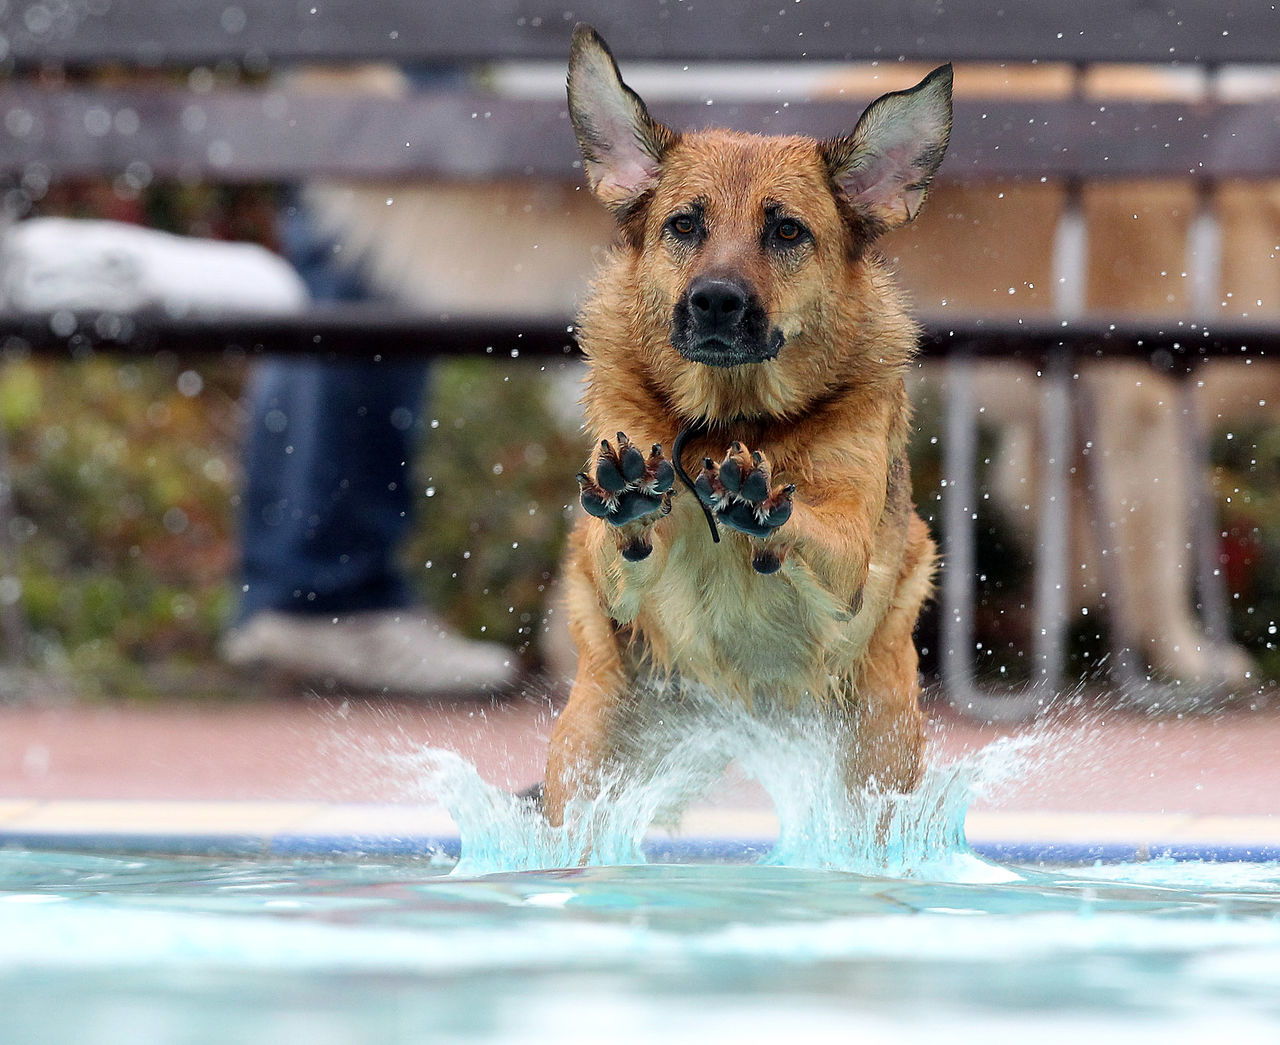 Hundeschwimmen im Freibad von Hof / Germany am 27.09.2015 Action Animal Animal Themes Close-up Dog Dogs Dogslife Hund Hundeschwimmen Looking At Camera Nature No People One Animal Outdoors Pets Rightplacerighttime Sheepdog Swimming Pool Wasser Water Wet